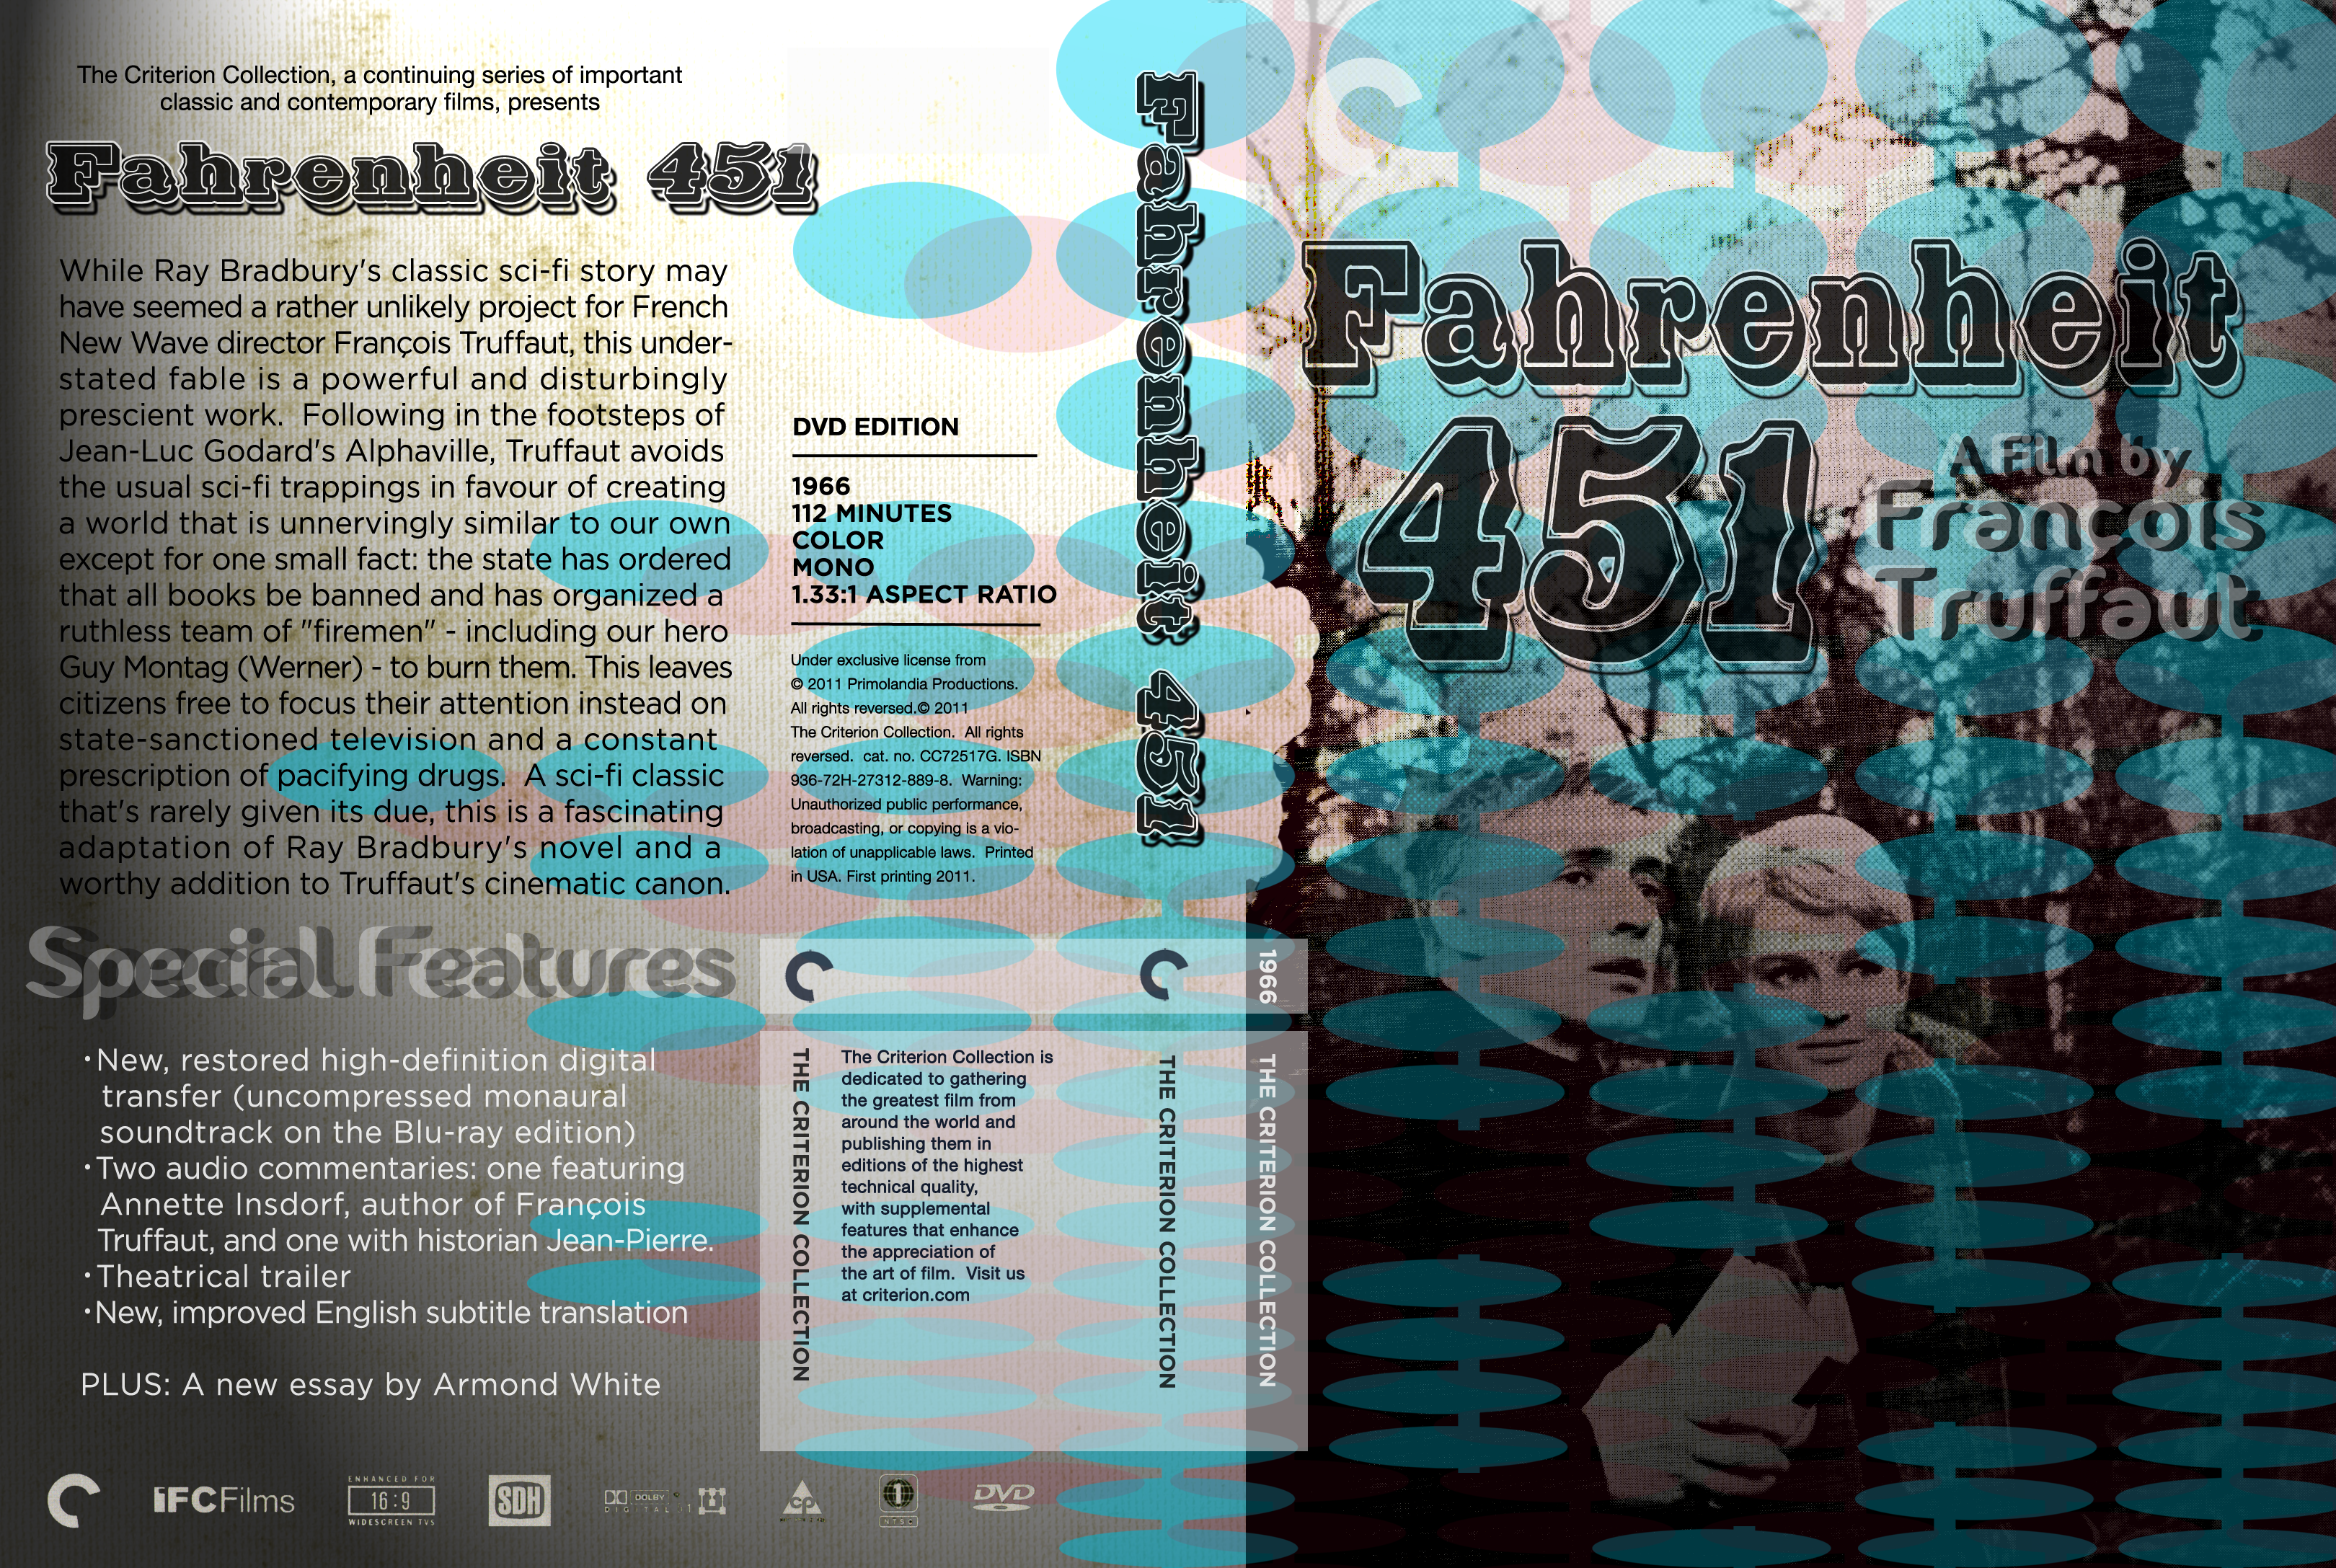 fahrenheit 451 conformity essays Need help on themes in ray bradbury's fahrenheit 451 check out our thorough thematic analysis from the creators of sparknotes.